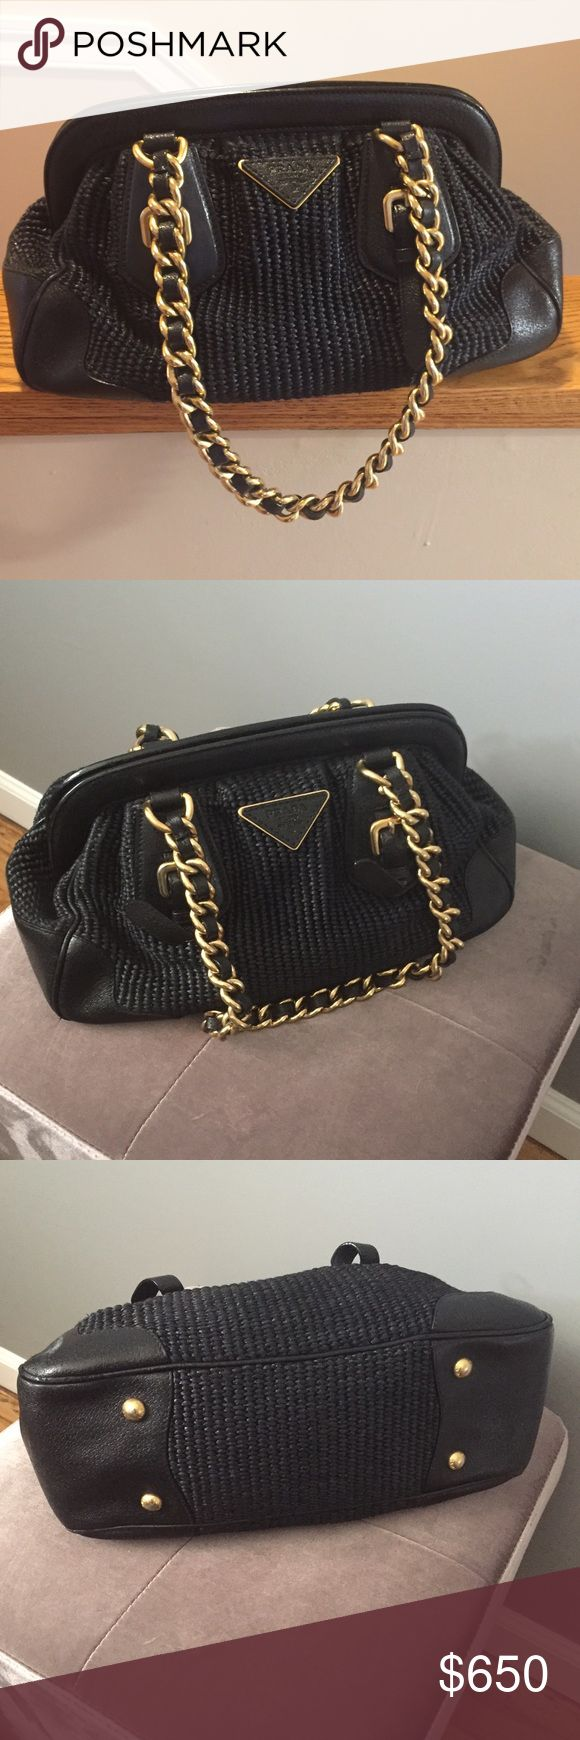 Firm price! AUTHENTIC Prada Handbag! Great Buy! This is a GREAT PRICE ! And final price cut! It's  is a great classic Prada handbag! Will never go out of style! Black leather and wicker with gold hardware. Has inside pocket and zipper compartment inside. Only reason I'm selling is to make room! I love this bag! Great condition! Own it for a fraction of the price! Prada Bags Shoulder Bags